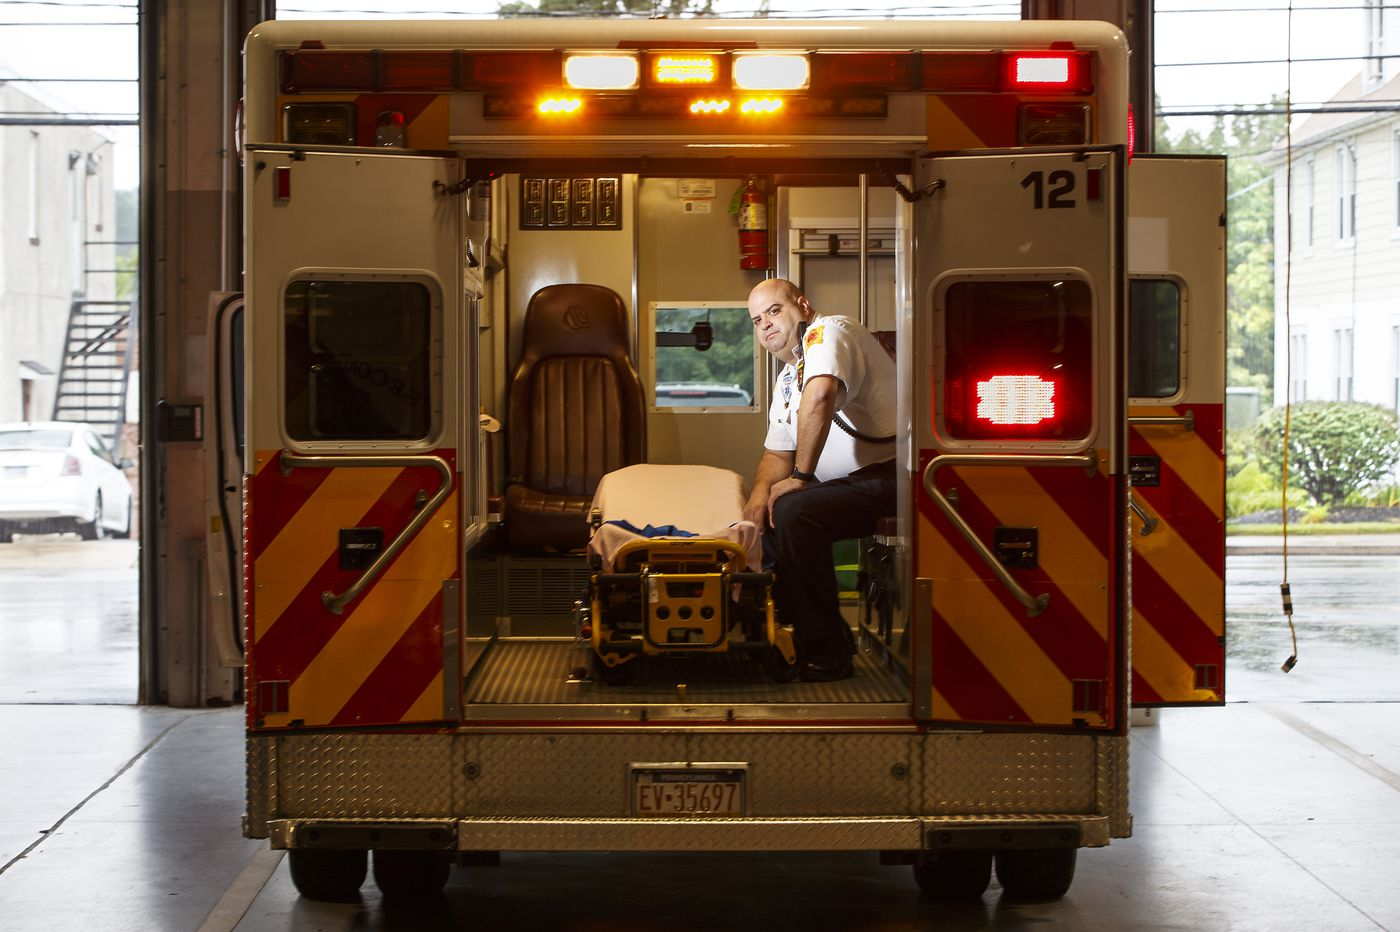 Worried about ambulance costs? Consider a subscription.